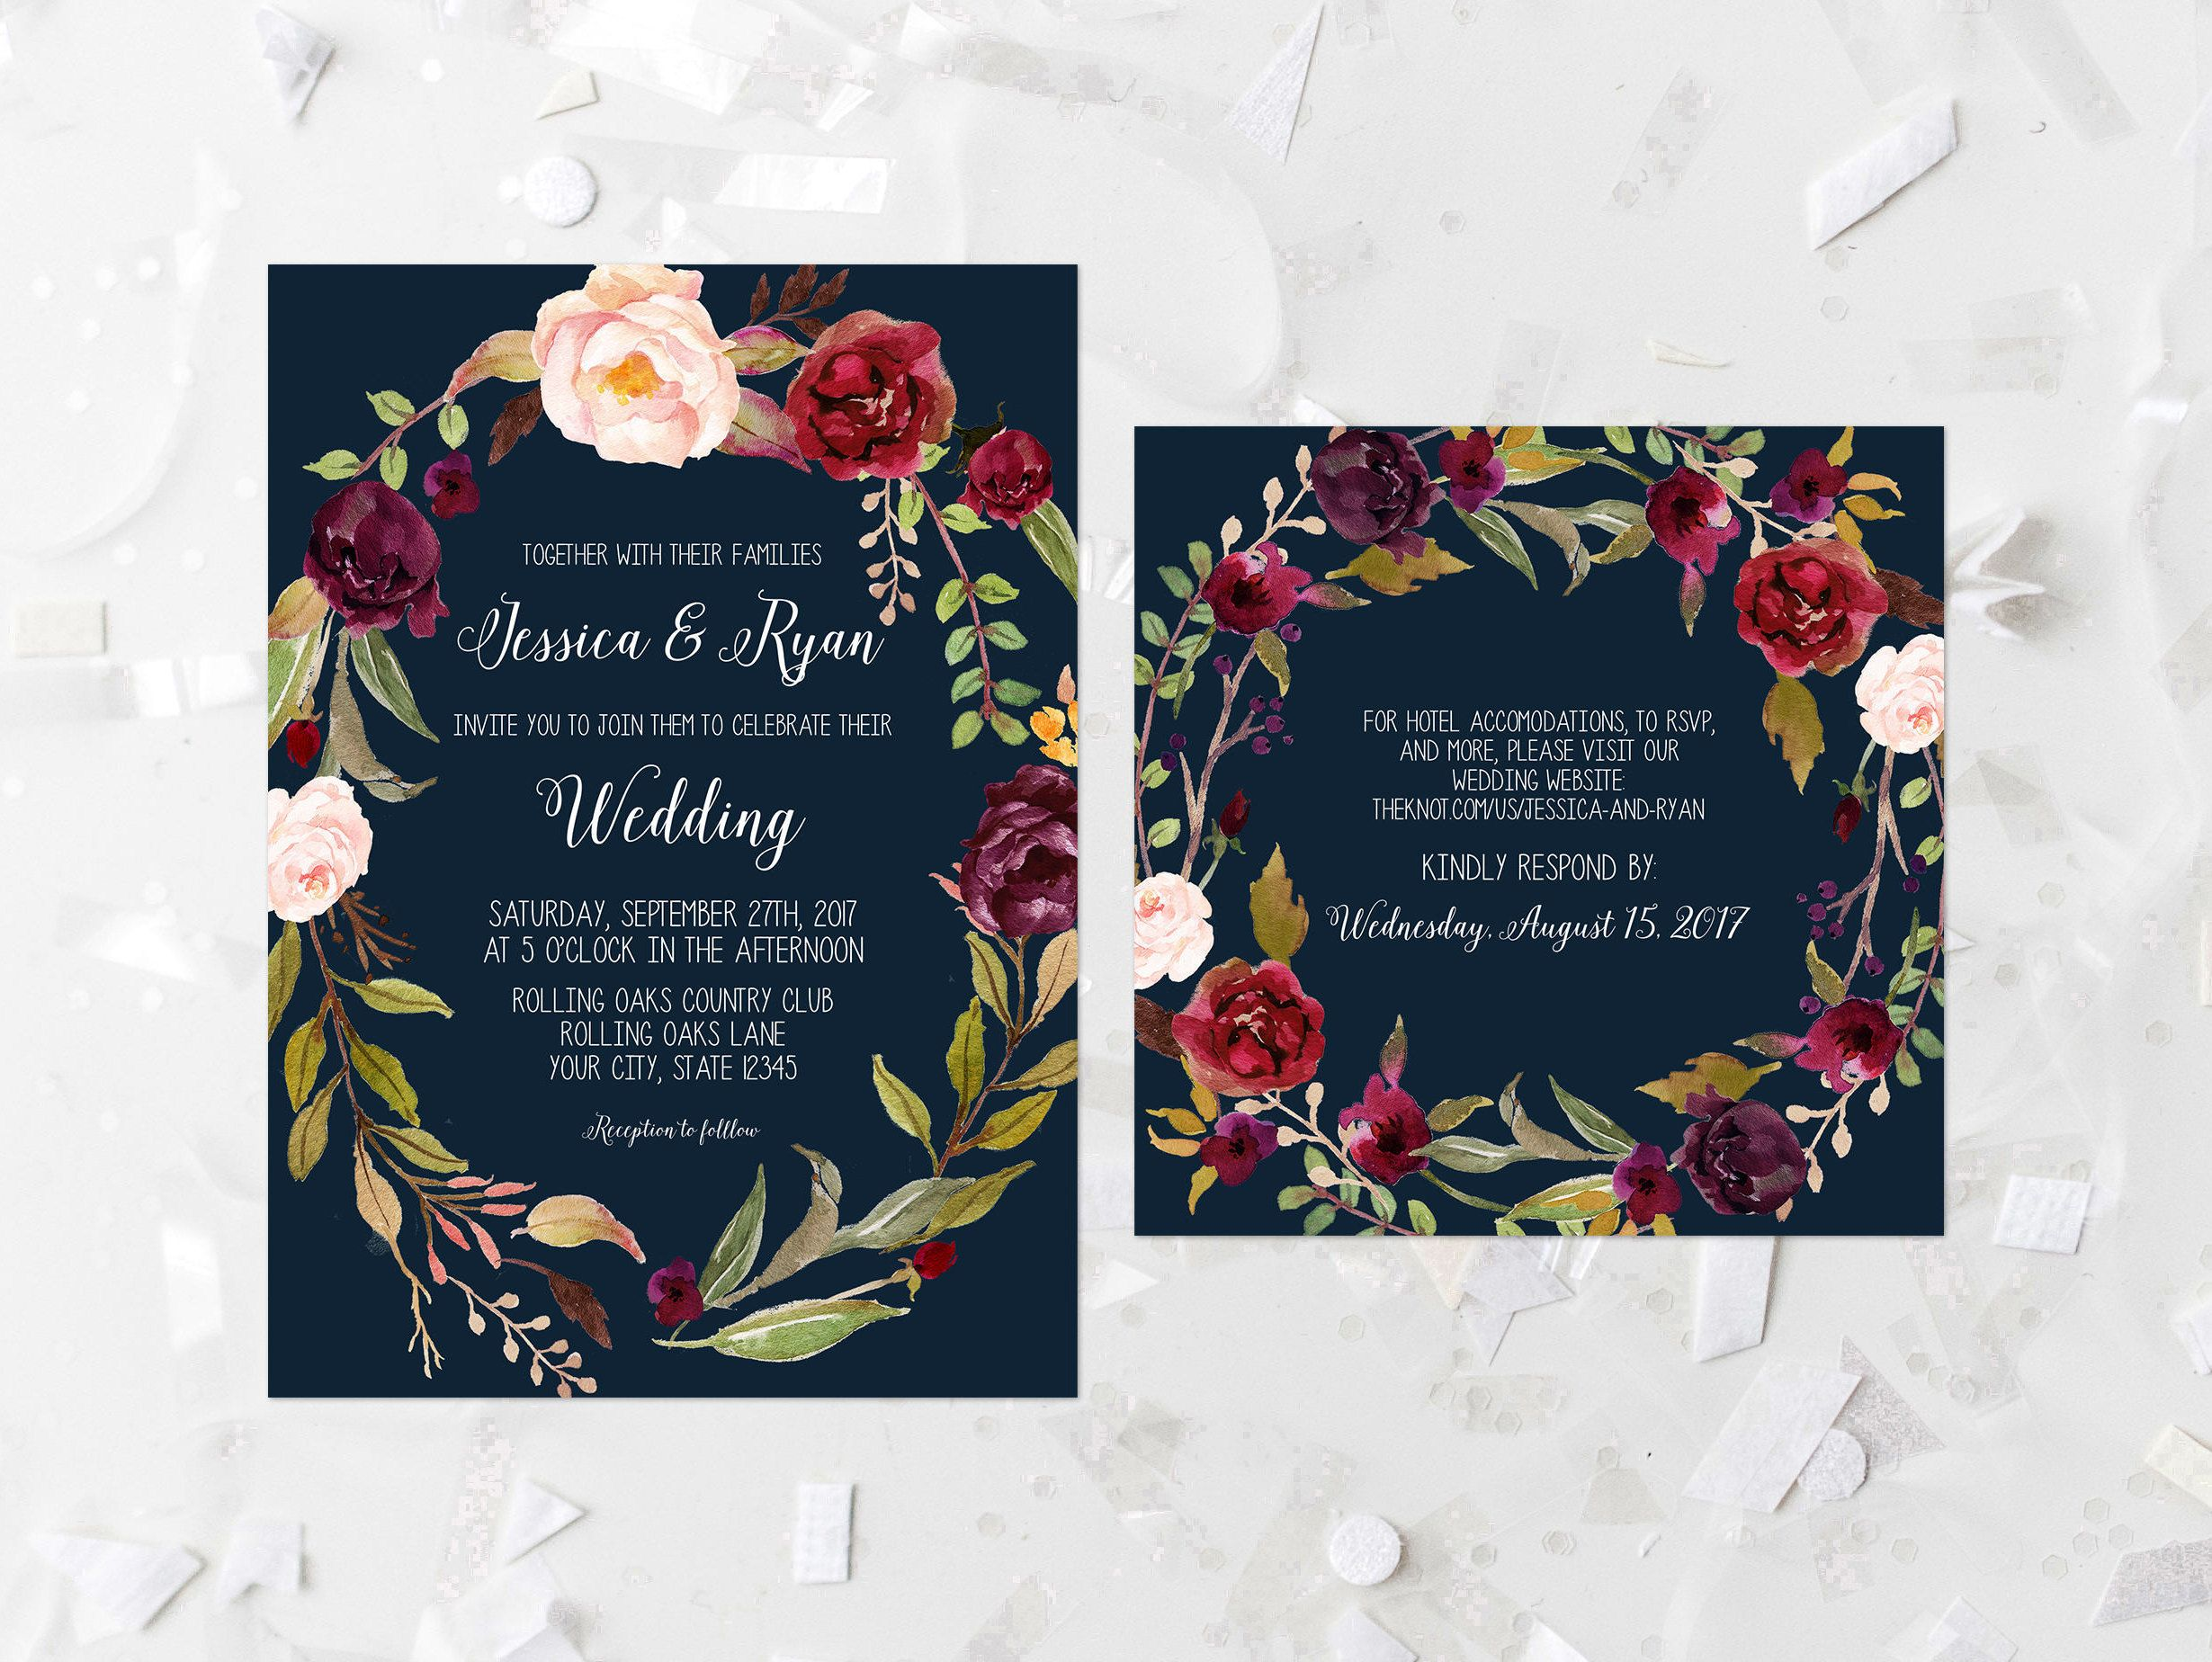 types of printing for wedding invitations%0A Us Weather Map Of Temperatures